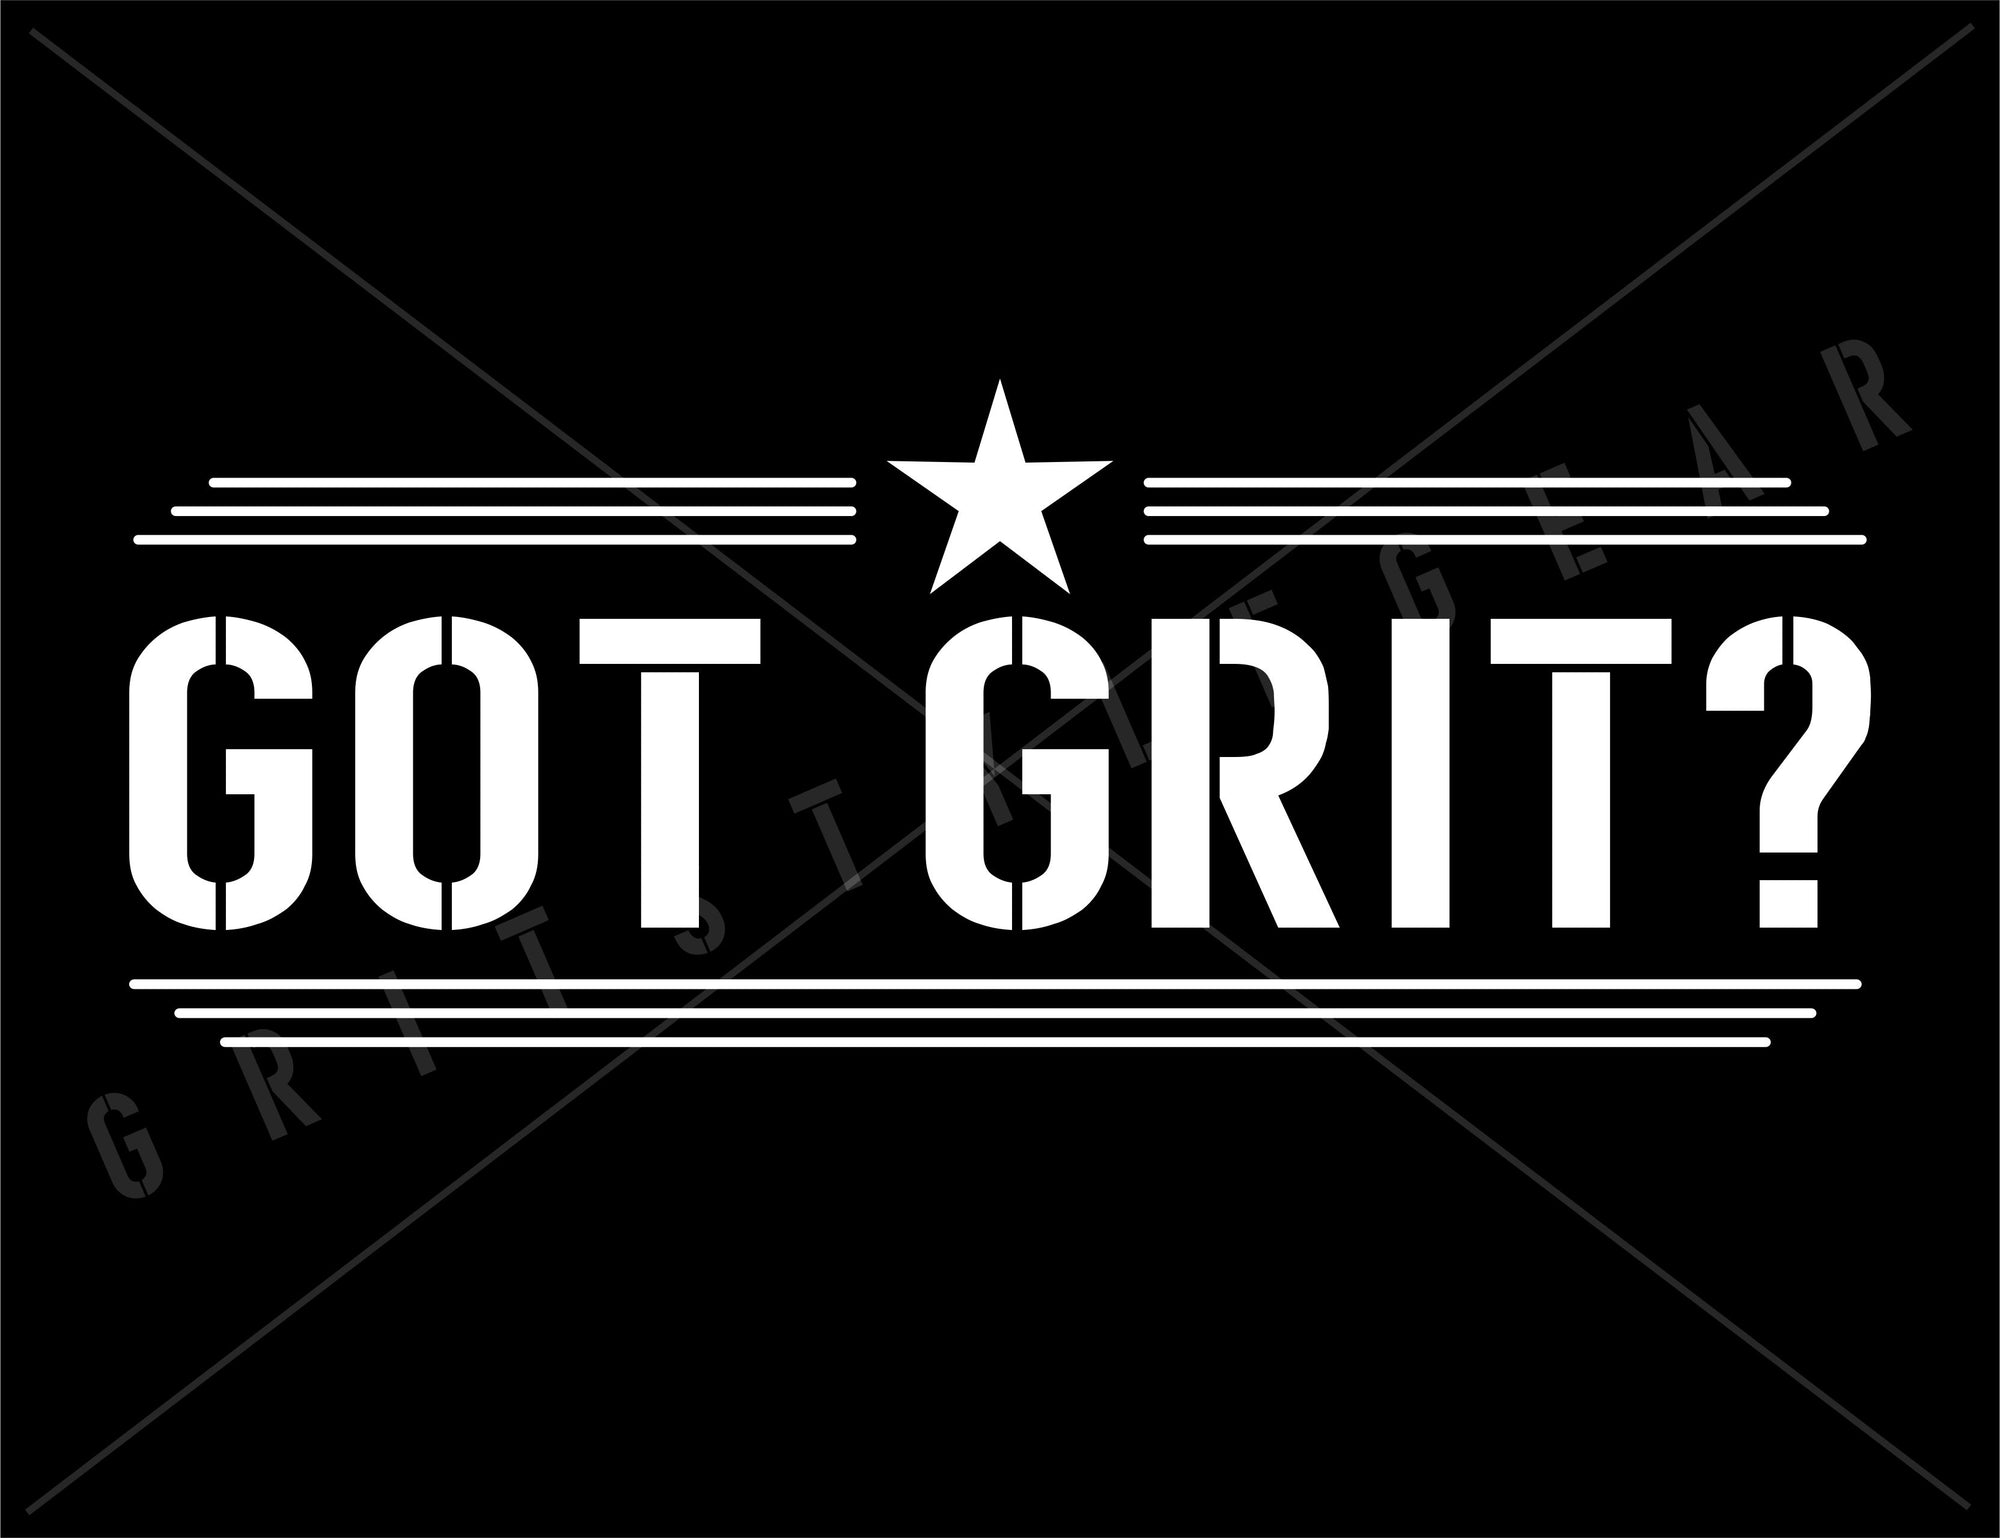 Got Grit Vinyl Decal - Sticker | Grit Style Gear